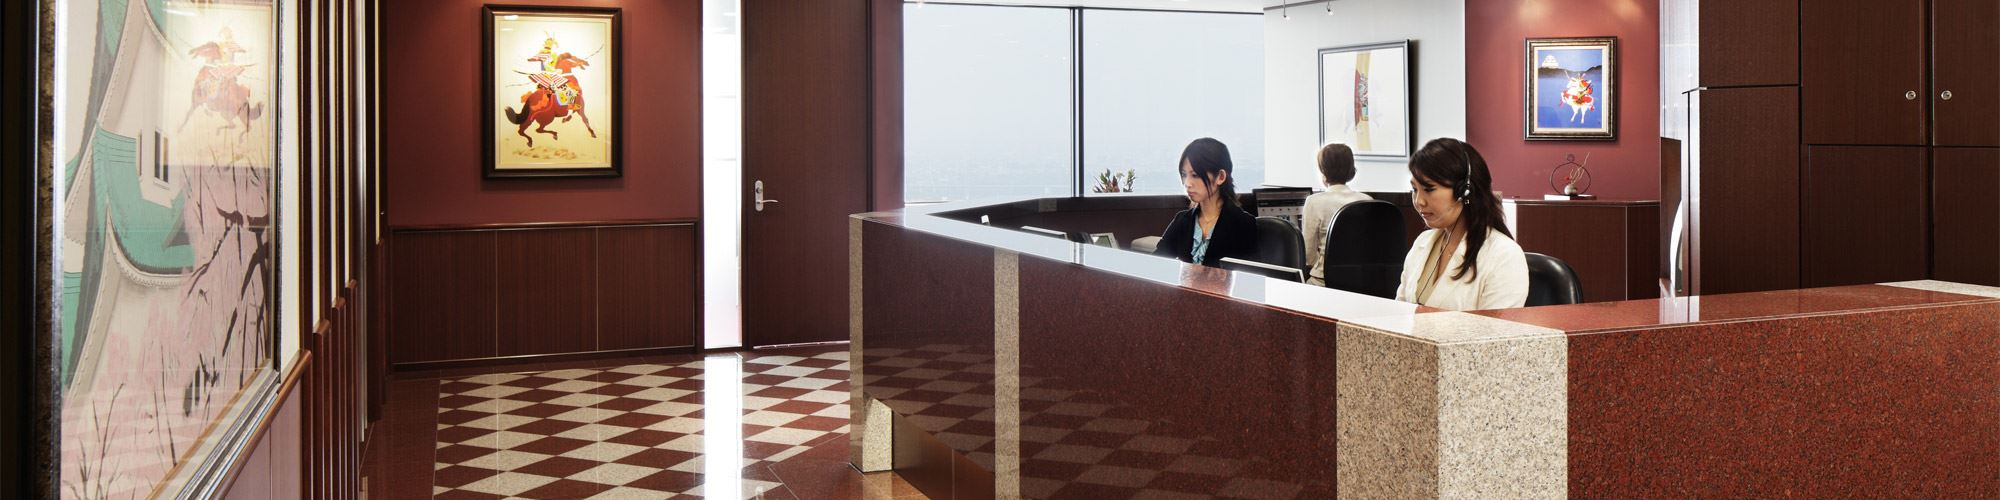 Nagoya Lucent Tower Reception